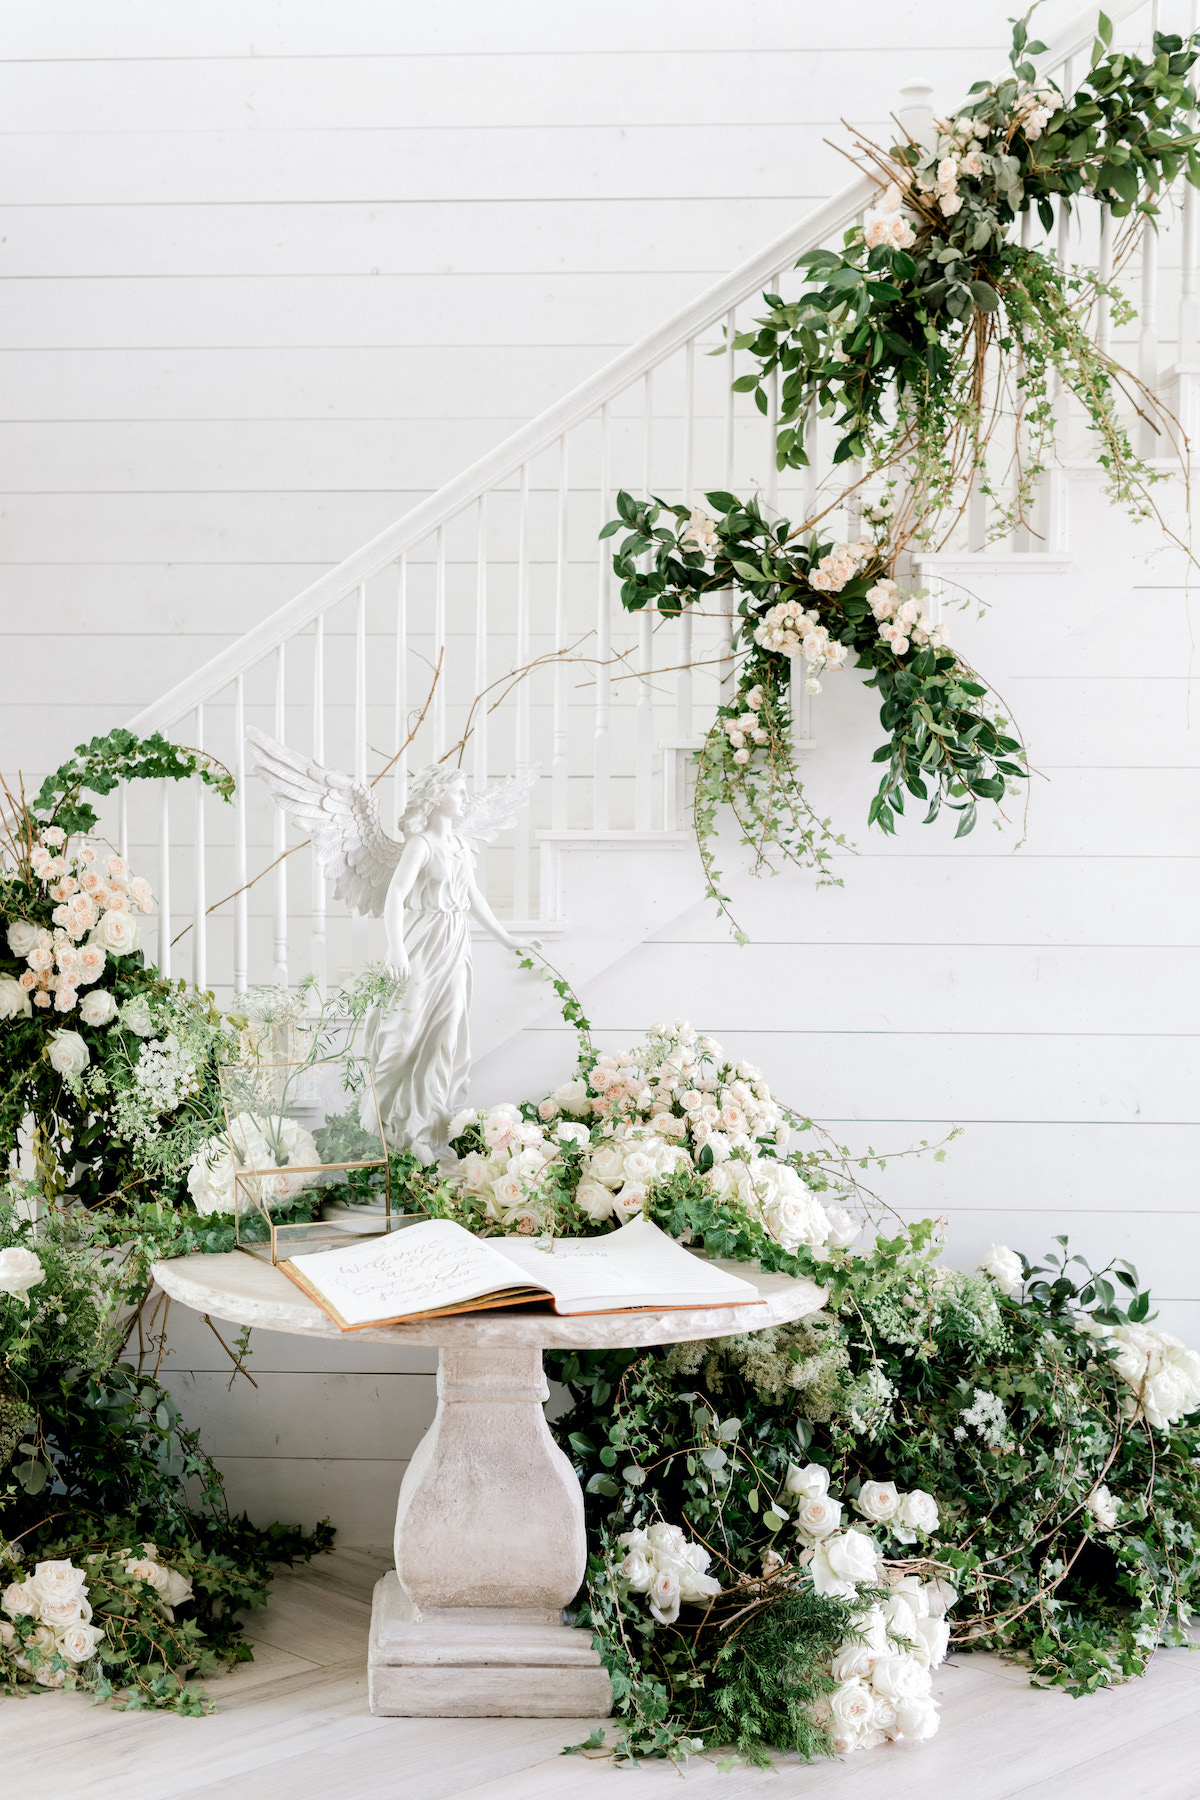 guest book on rustic stone table surrounded by floral garlands